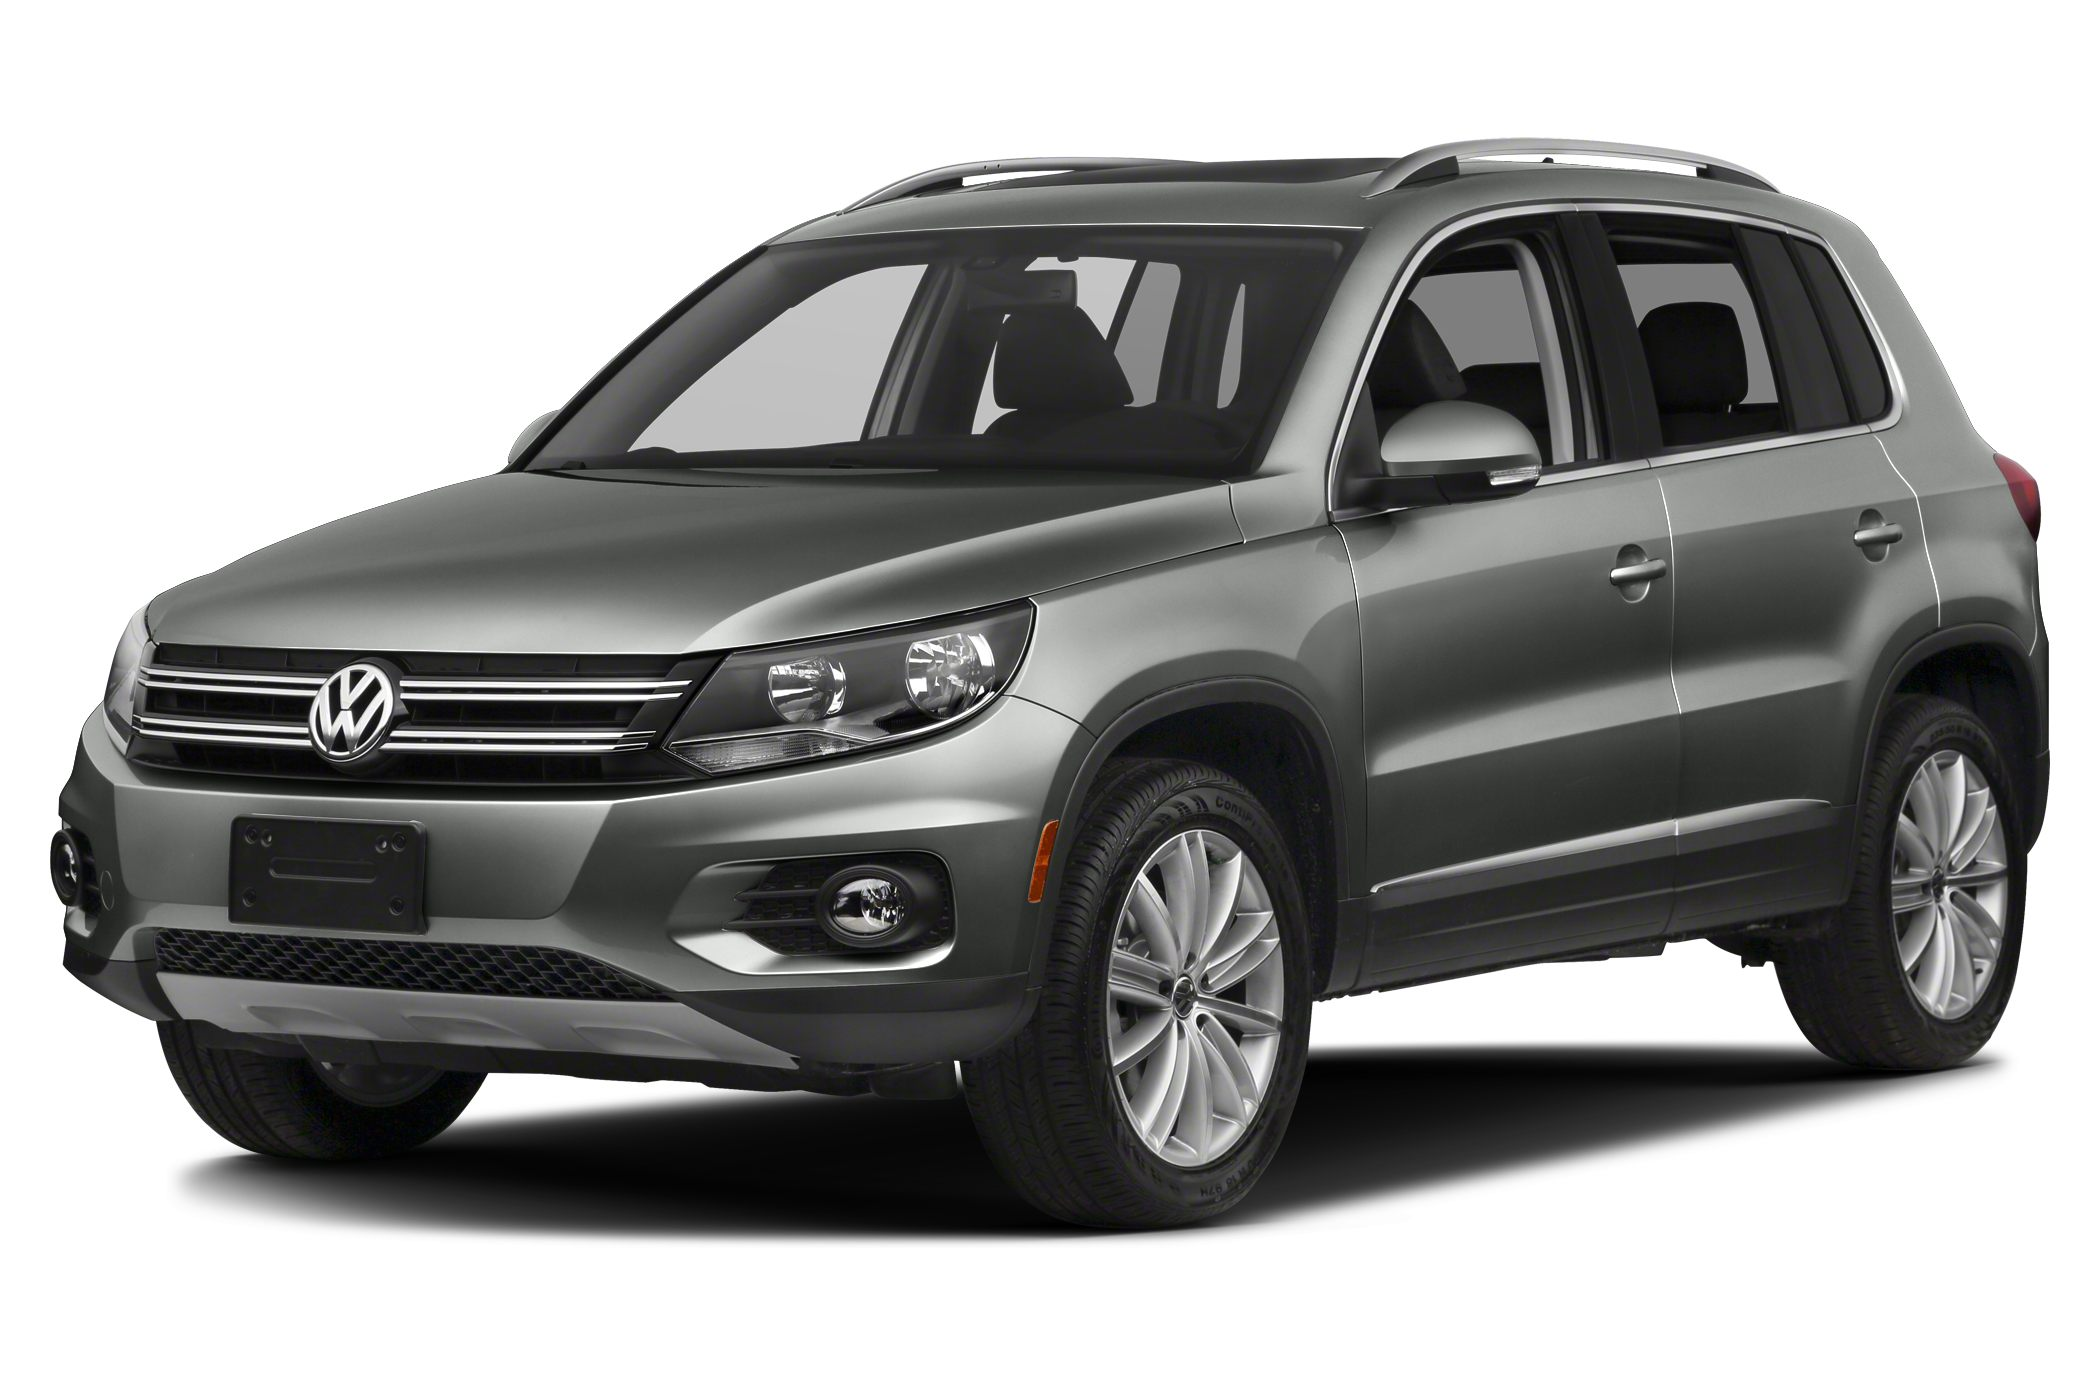 CAC20VWS032C021001 Interesting Info About 2018 Vw Tiguan R Line with Mesmerizing Pictures Cars Review